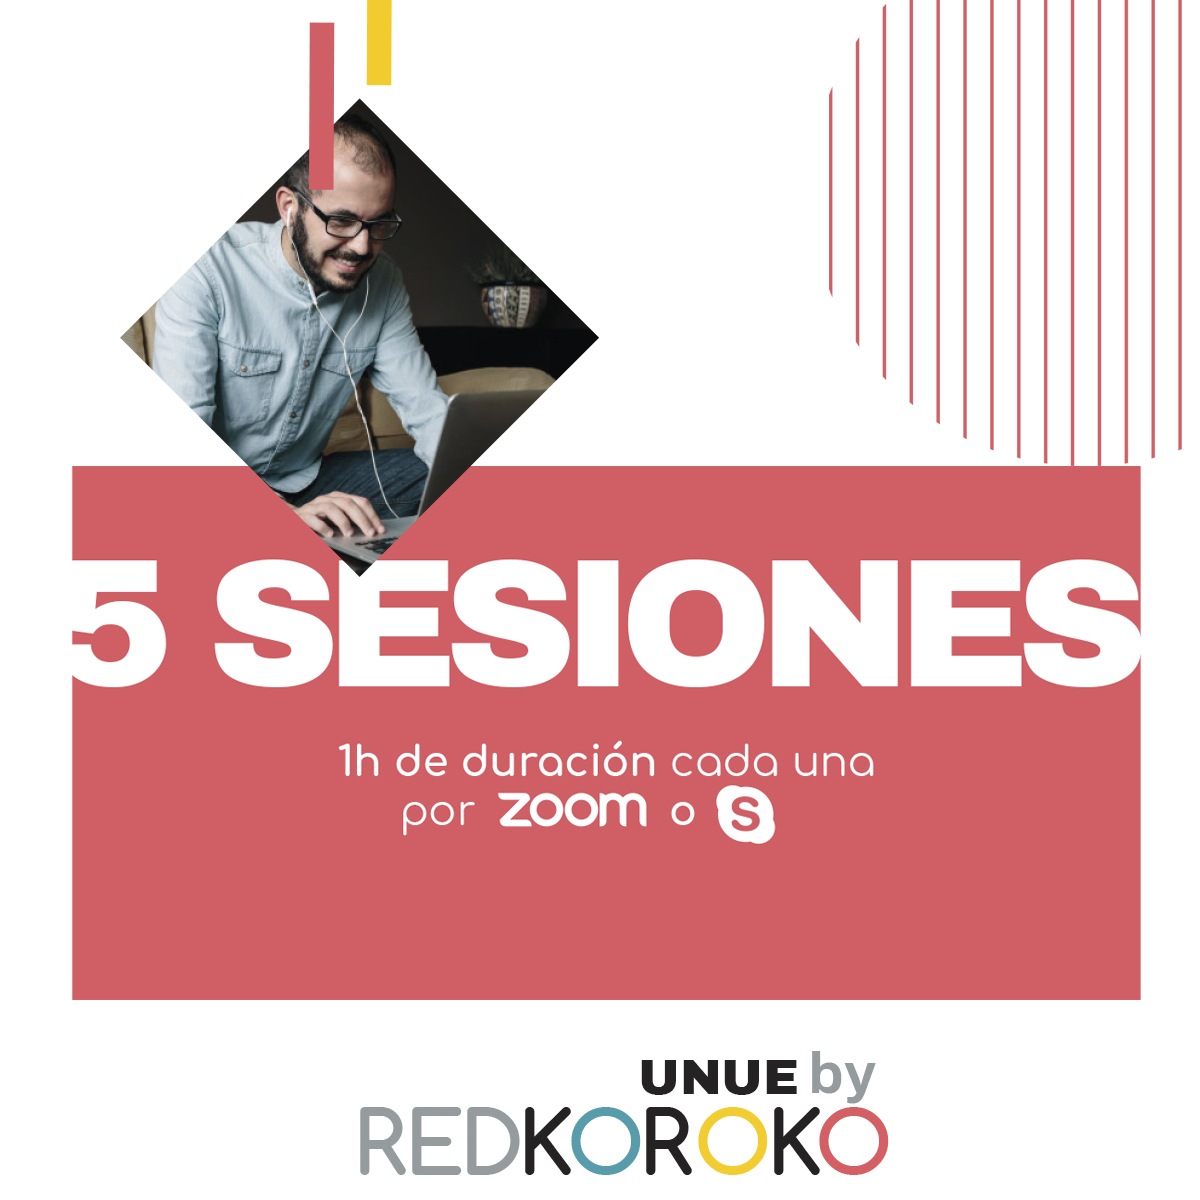 sesiones de mentoring marketing y comunicación